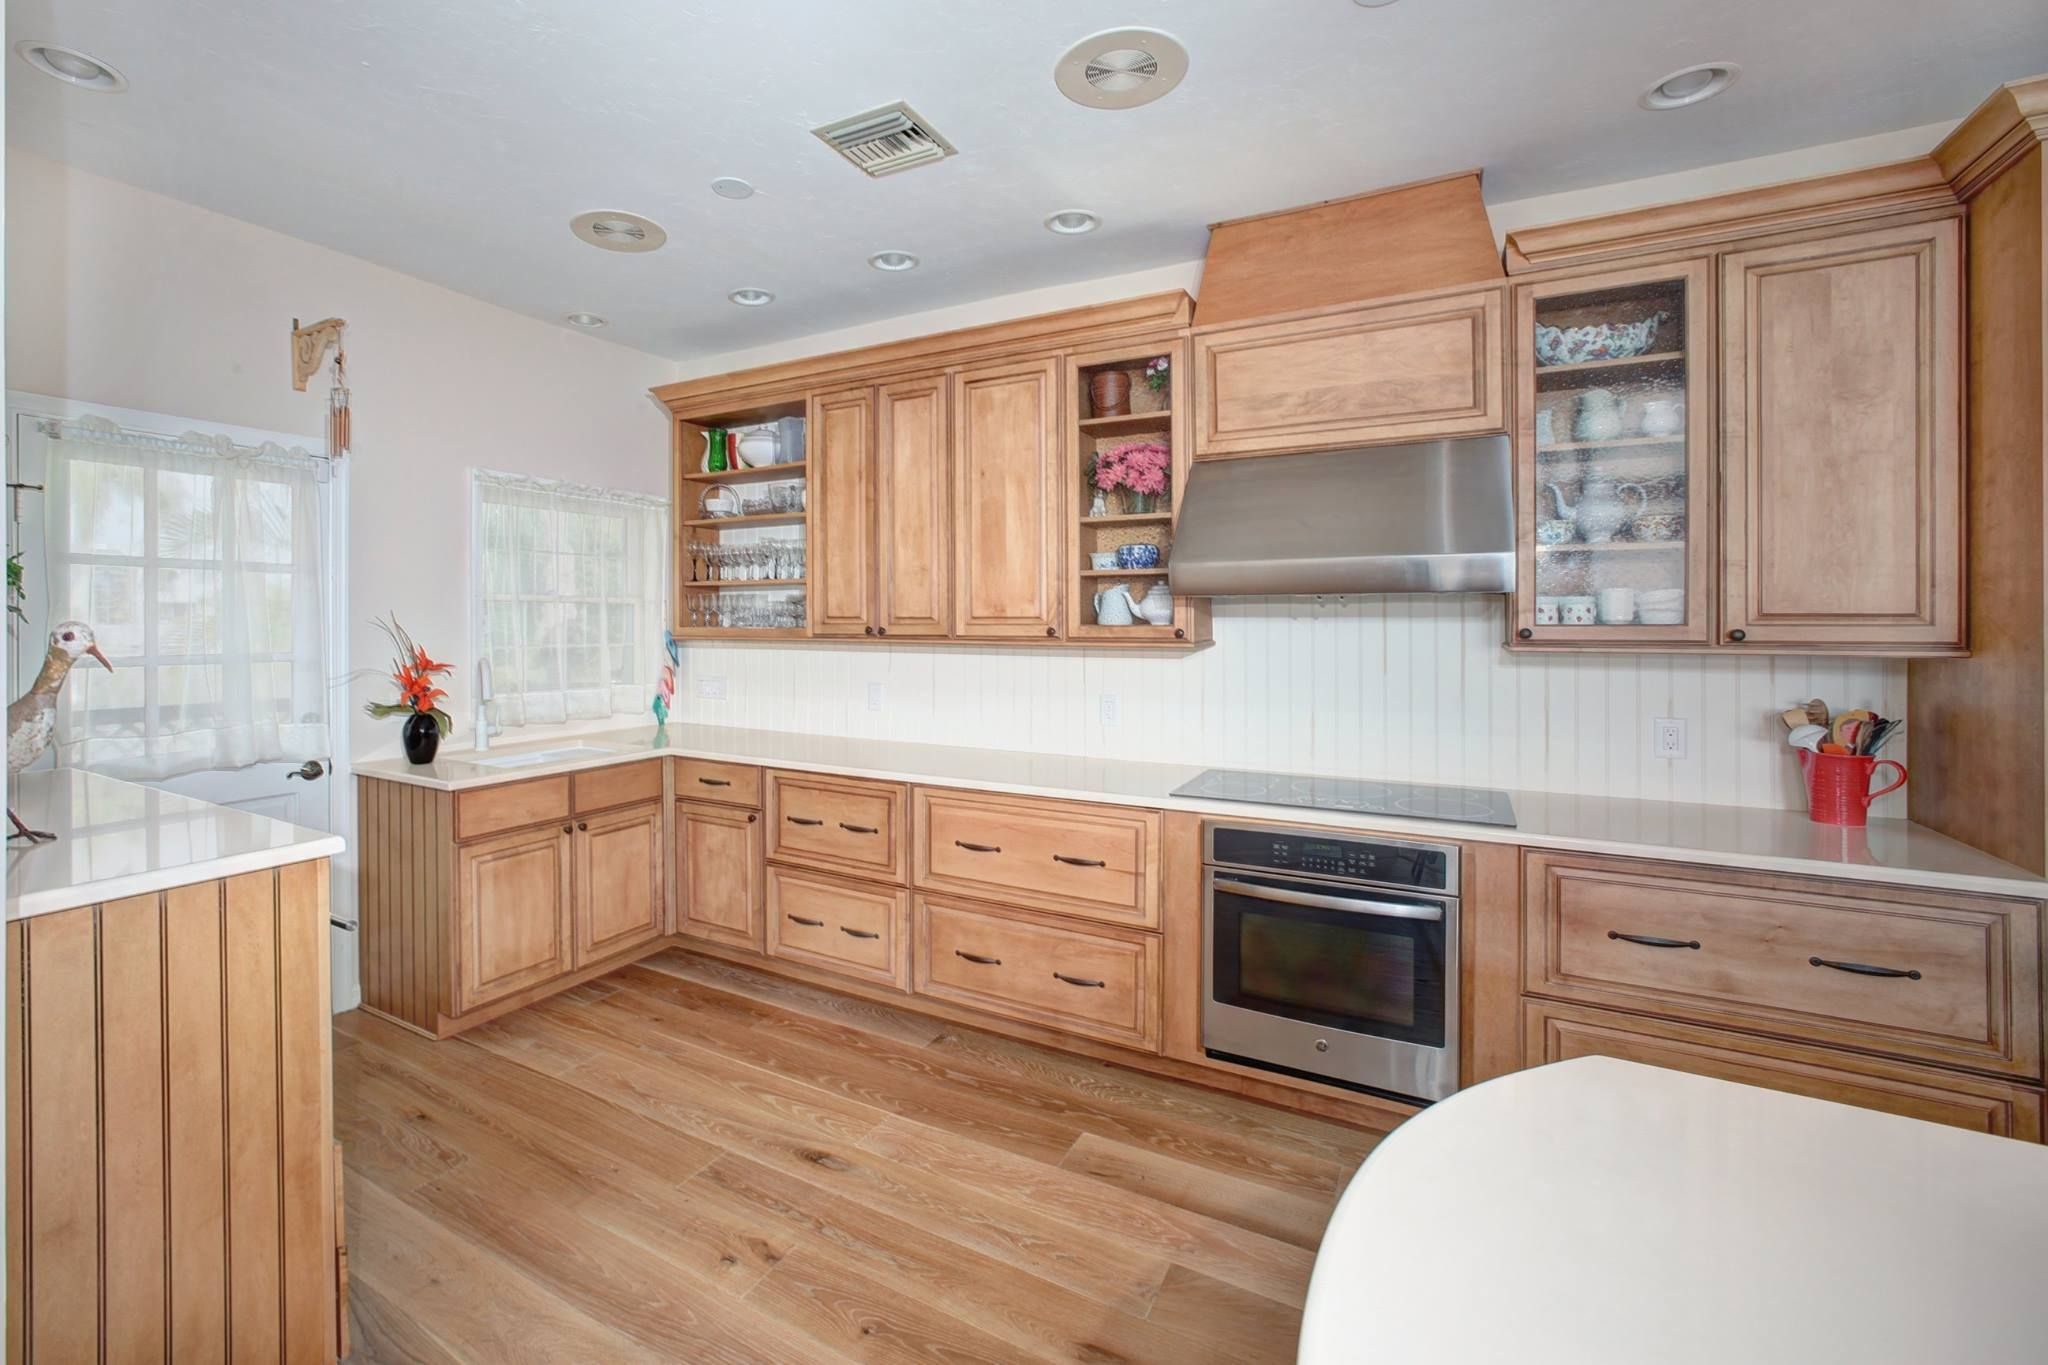 Kitchen Remodel Rustic Suede Cabinets Woodharbor Custom Cabinetry Naples, FL